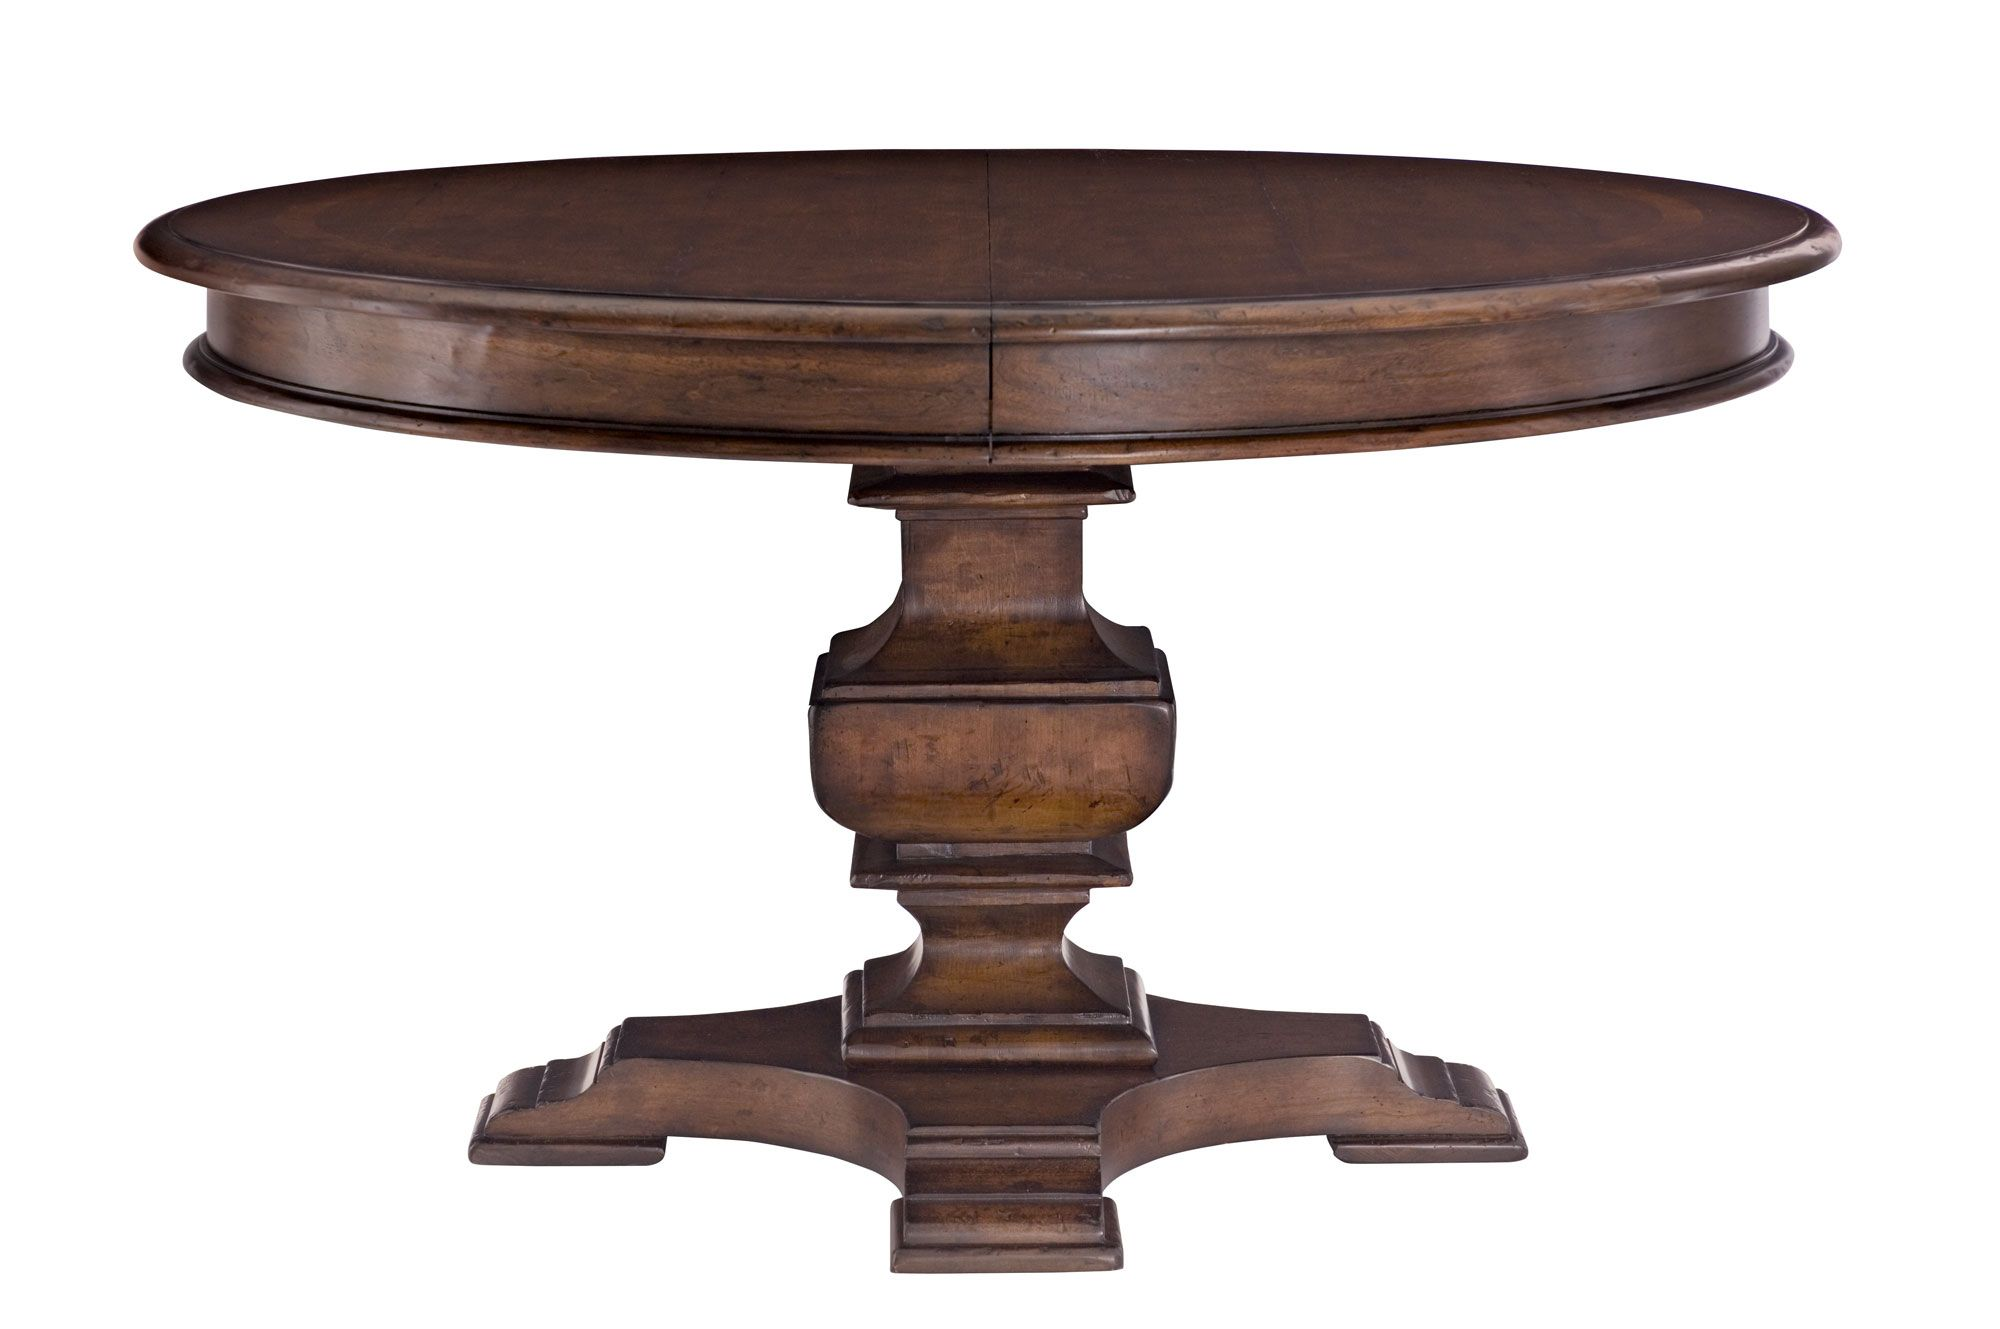 Round dining table top and pedestal base bernhardt home ideas round dining table top and pedestal base bernhardt dzzzfo